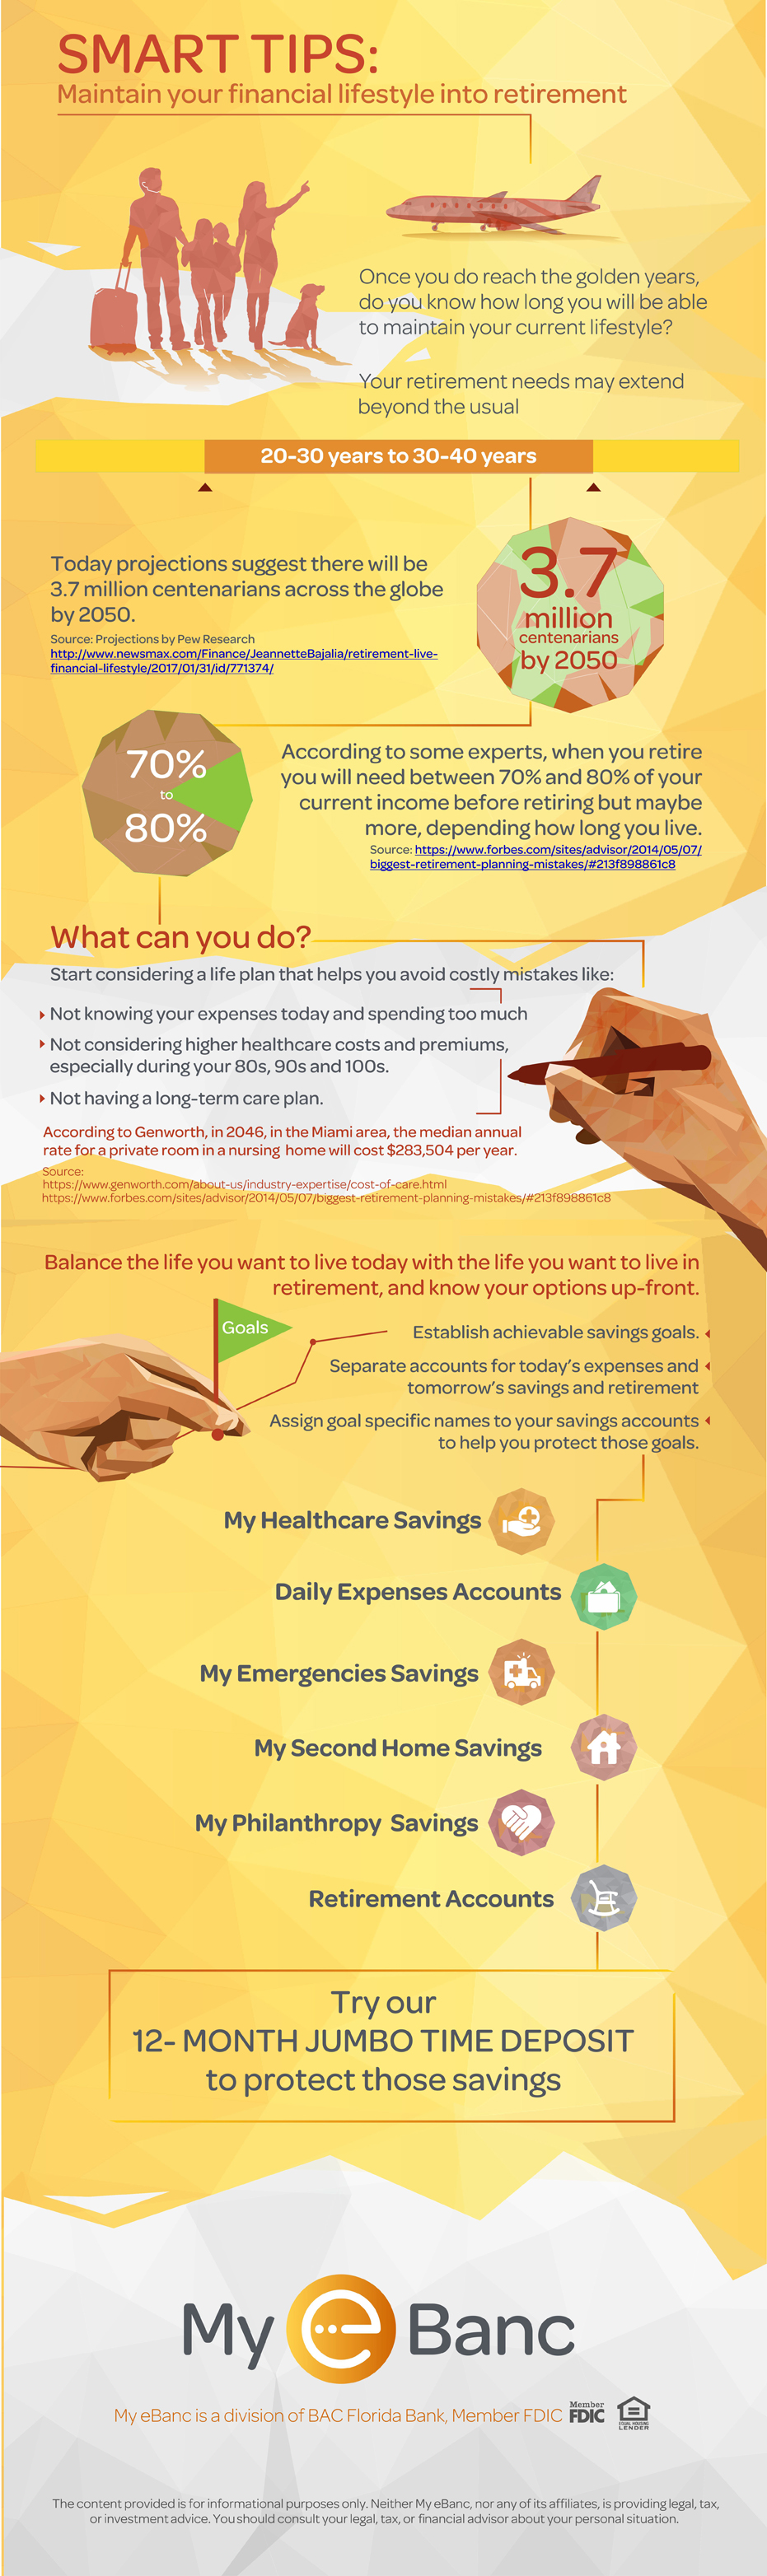 Infographic: Maintain your financial lifestyle into retirement